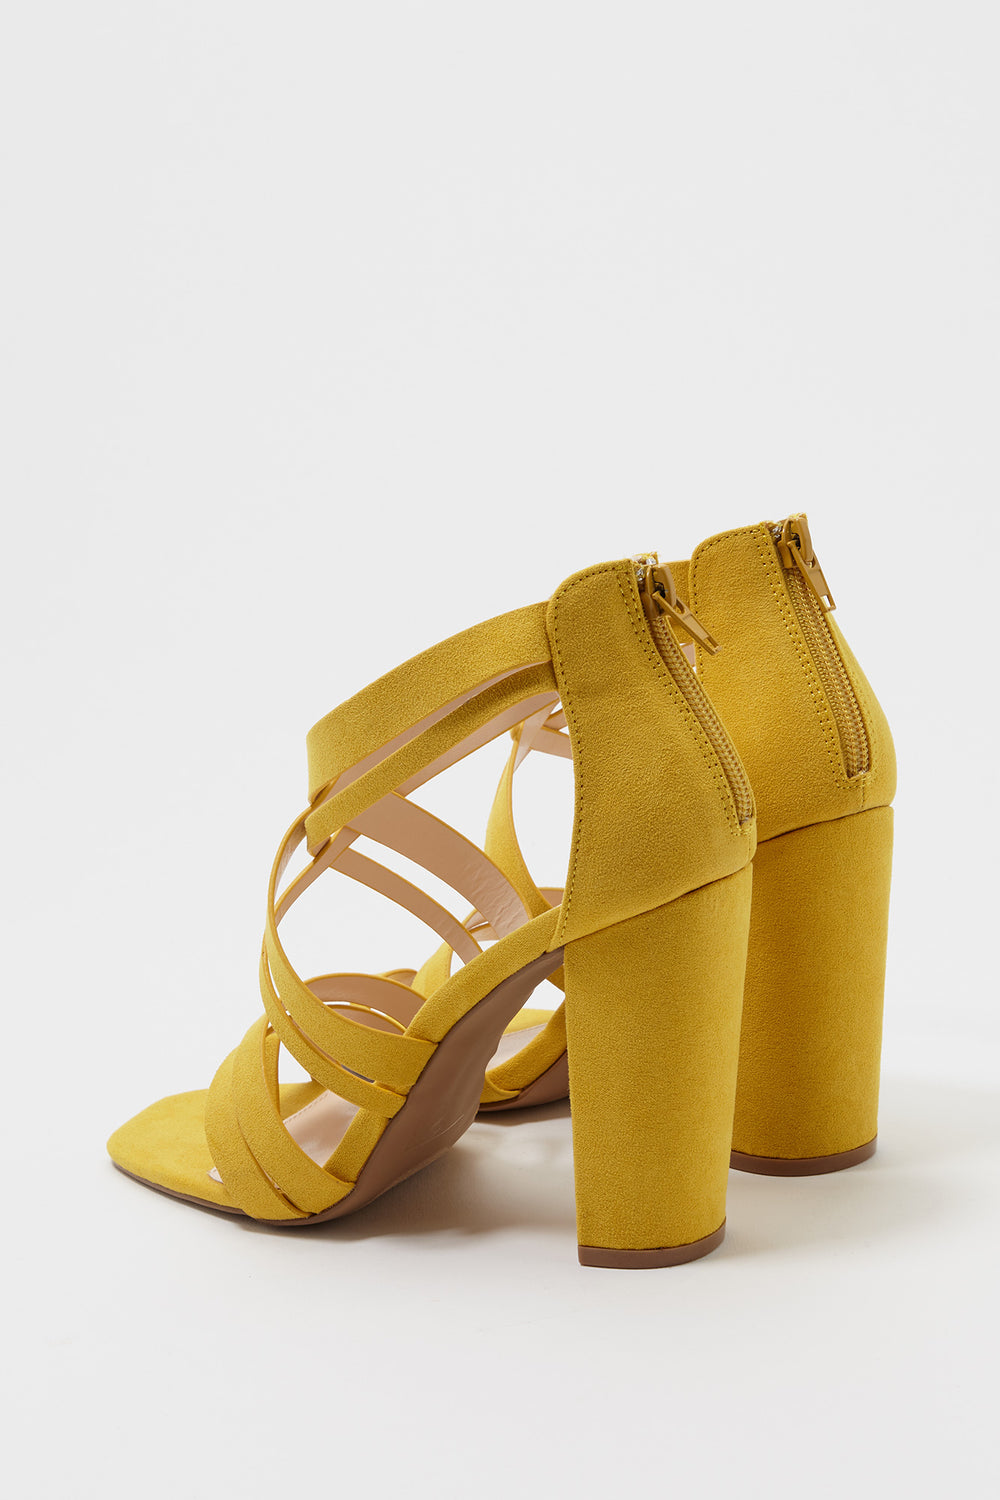 Features: Faux Suede, Pointed Toe, Wedges Heels Heel Height